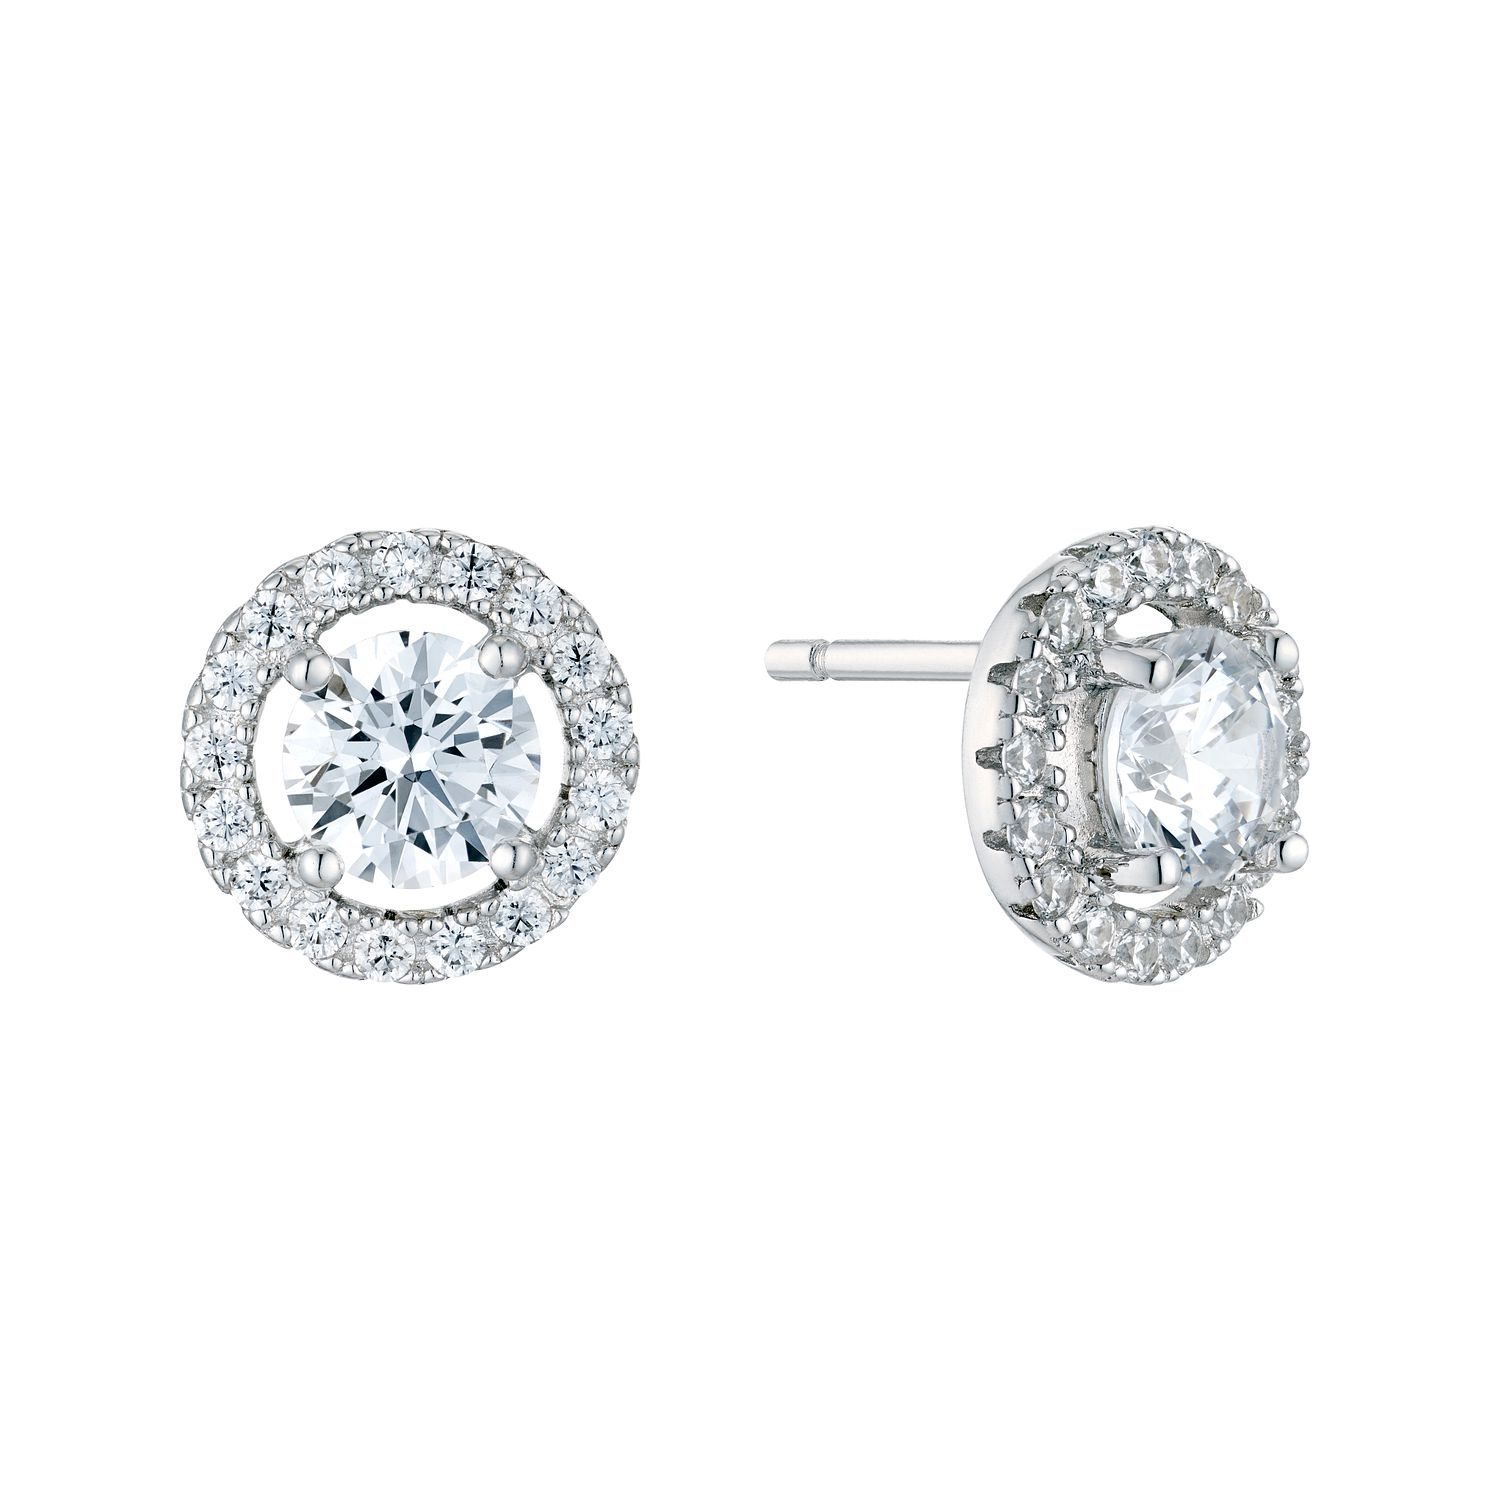 Silver Cubic Zirconia Halo Stud Earrings - Product number 5427770